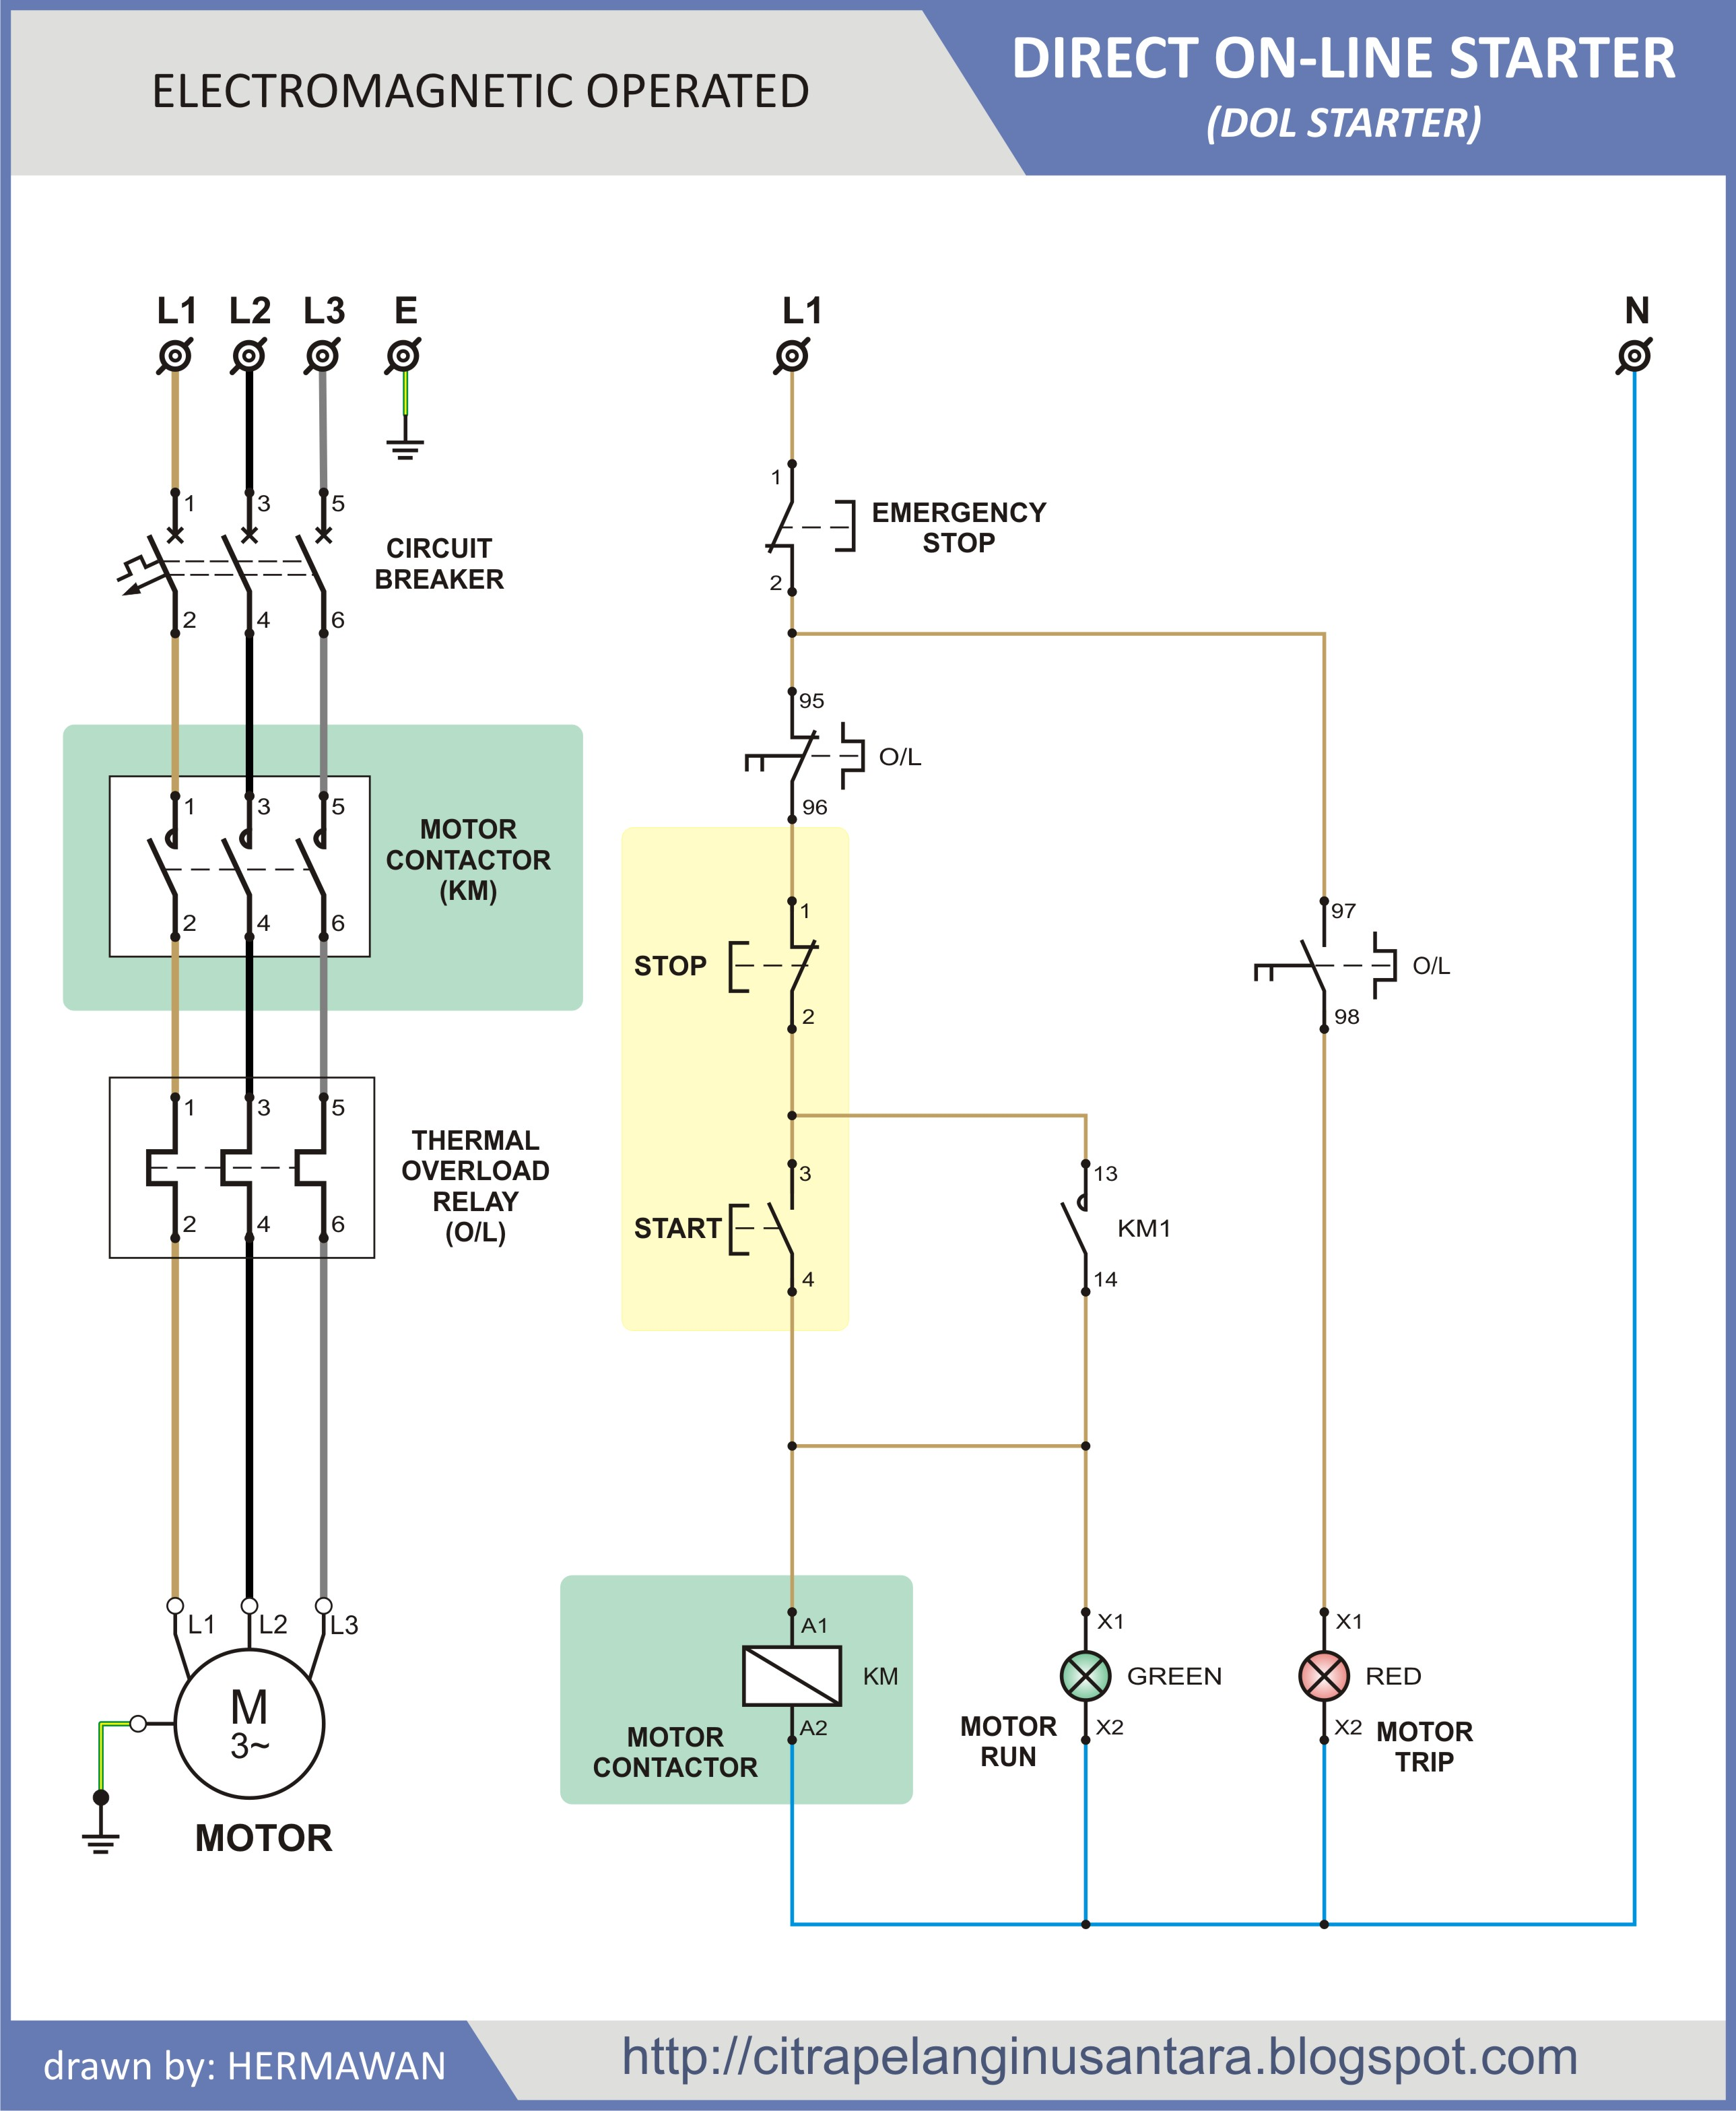 3 phase dol wiring diagram 1984 ford f150 starter solenoid solid state relay operated 351kb